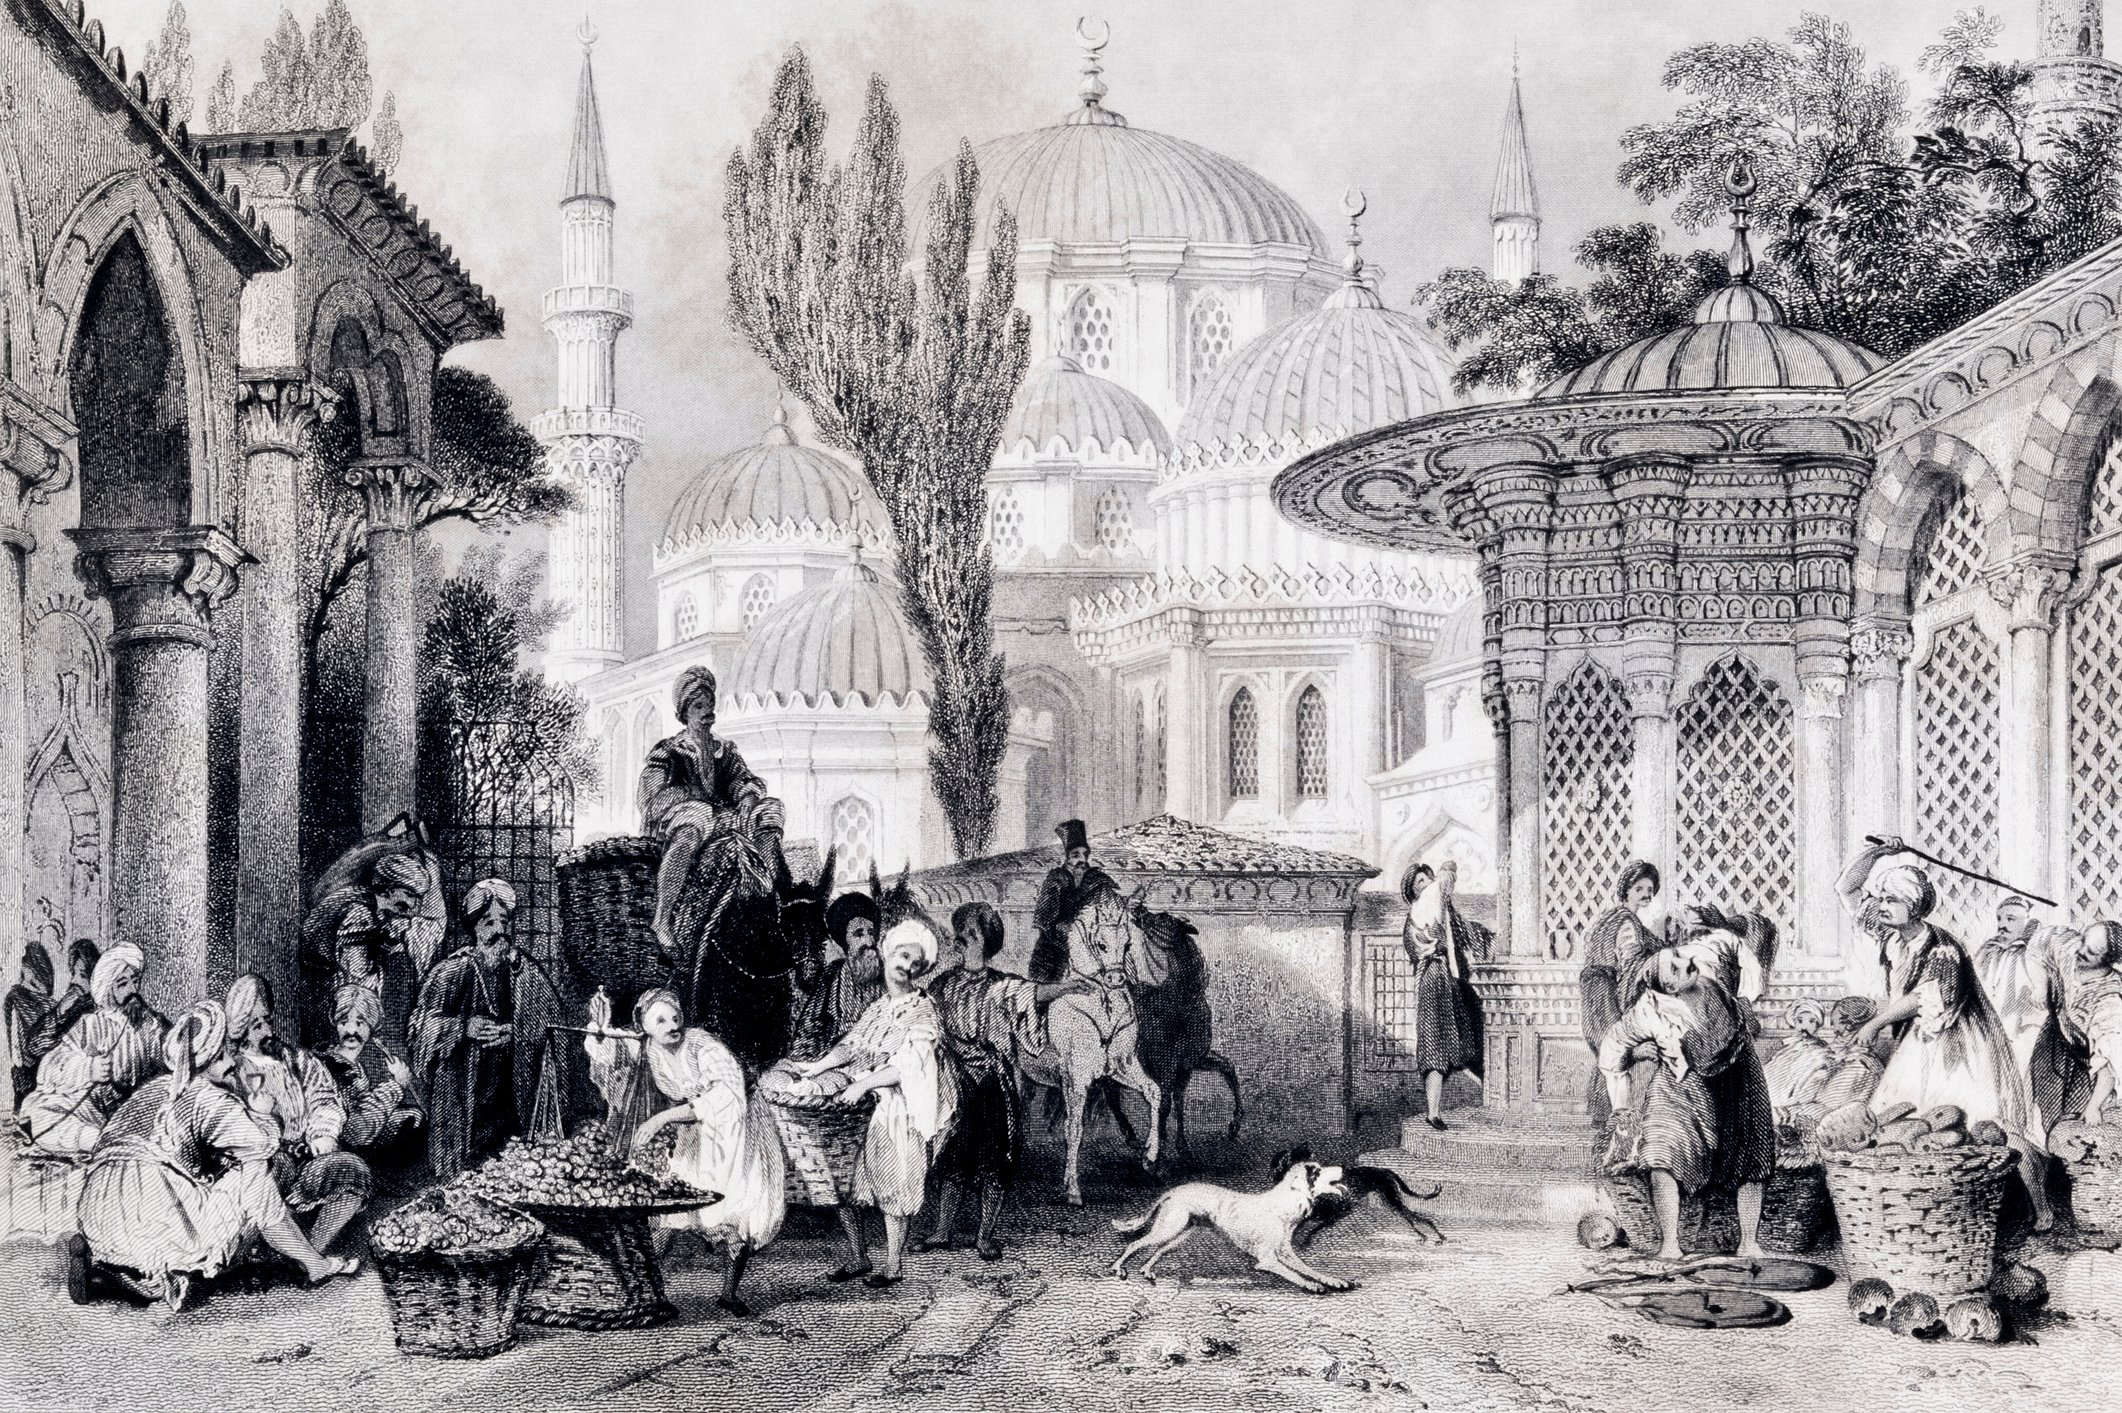 Vintage engraving depicts the Şehzade Mosque and a street market in Istanbul. (iStock Photo)